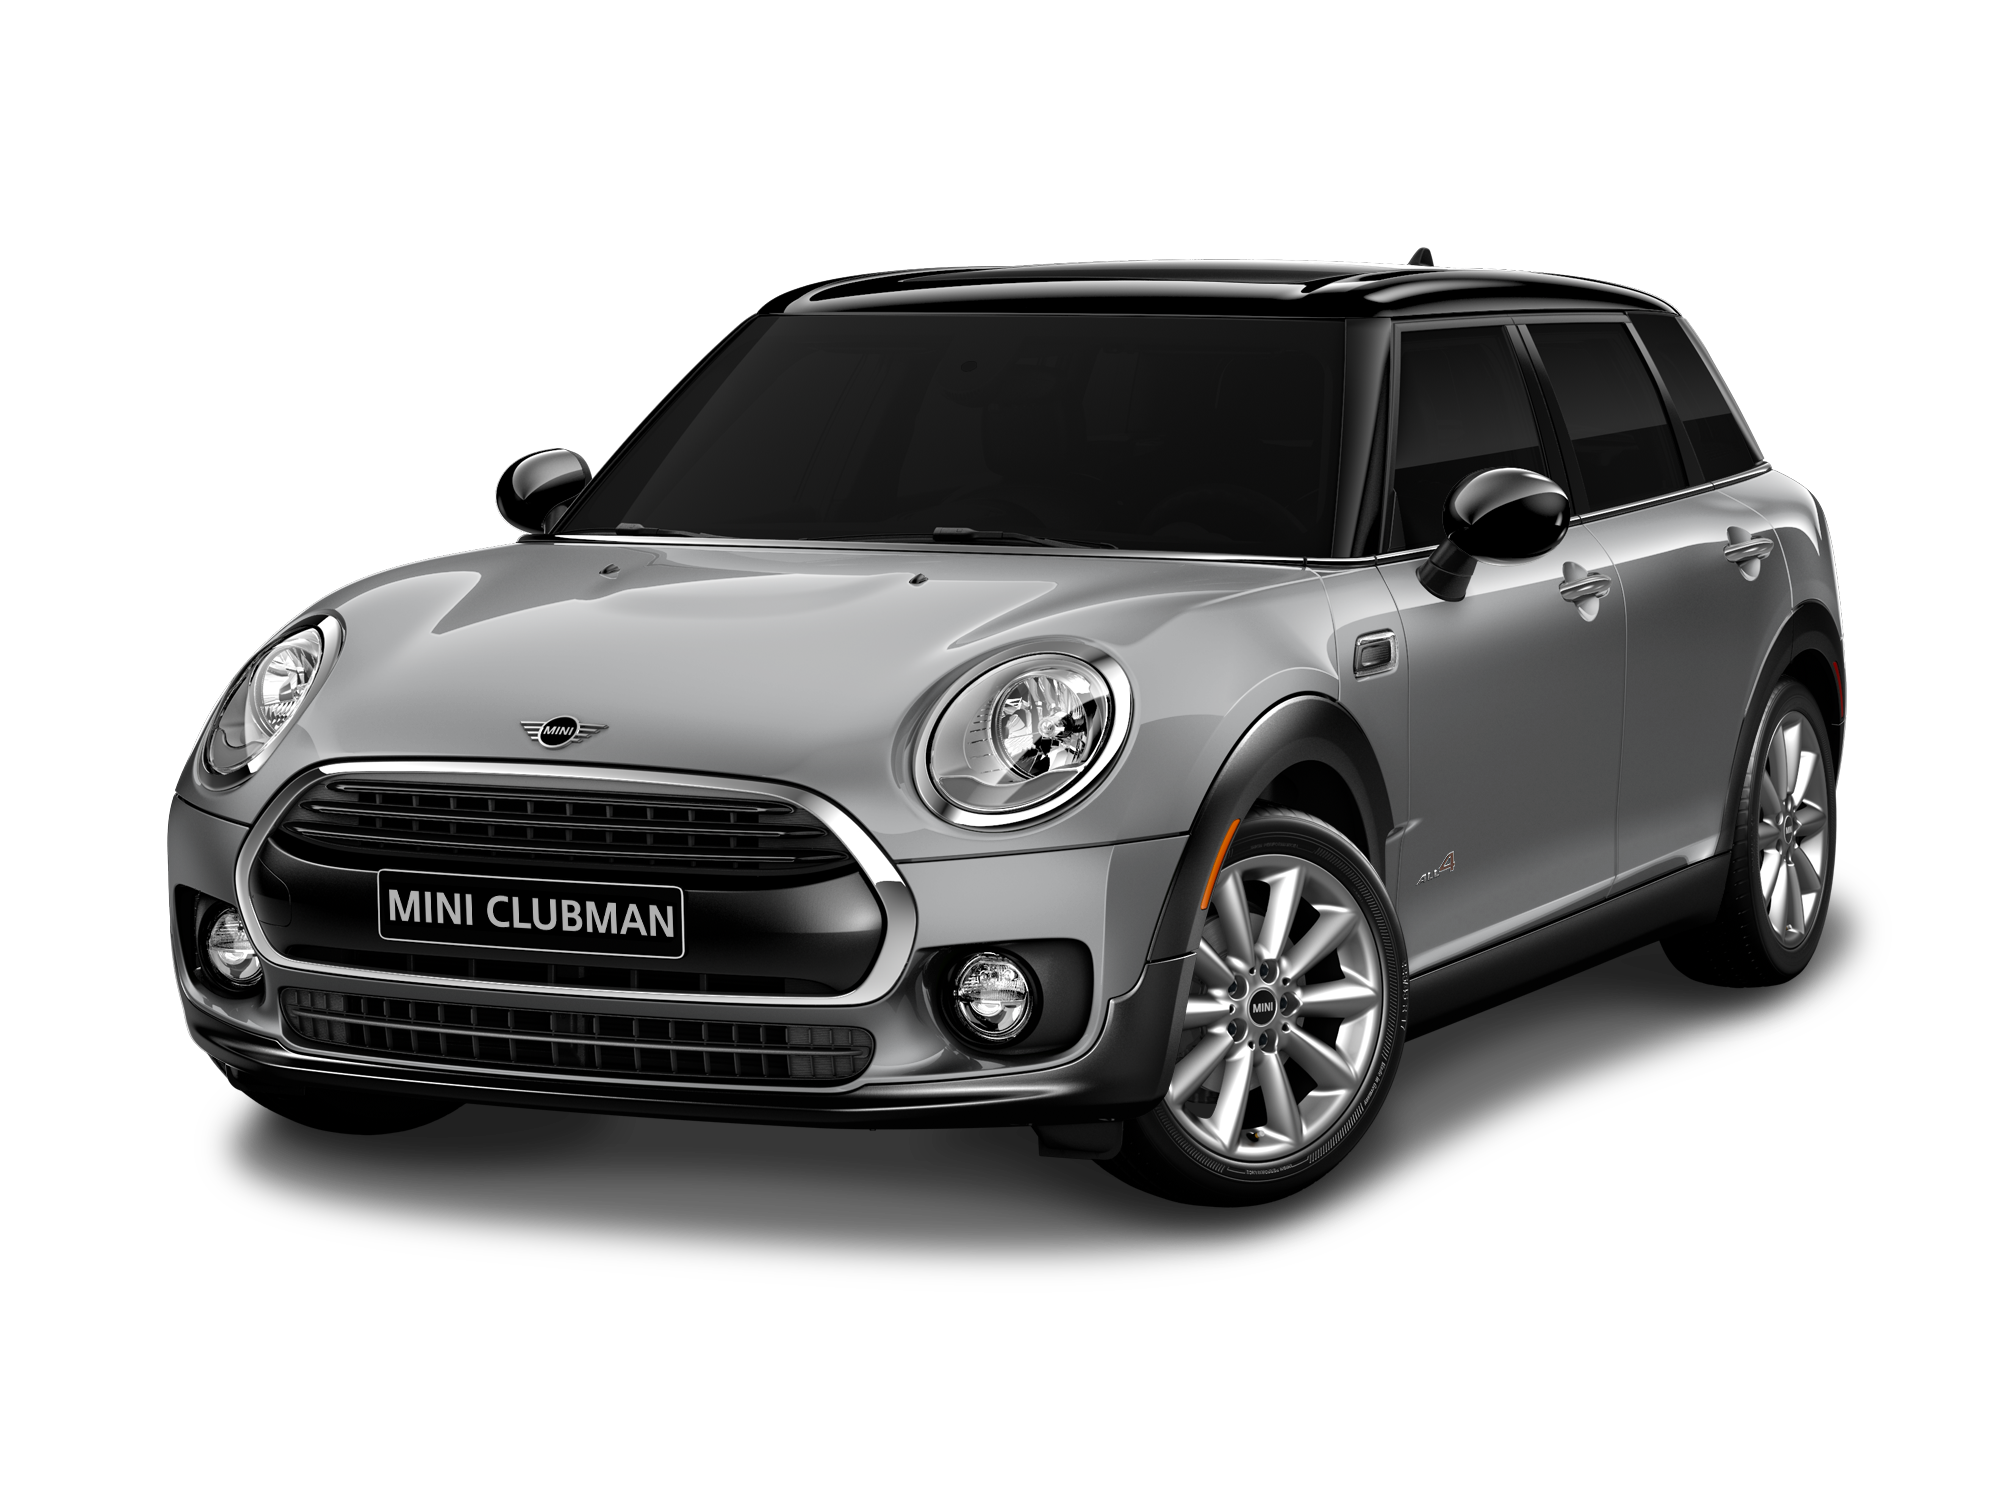 New Used And Pre Owned Mini Cars Trucks And Suvs For Sale At